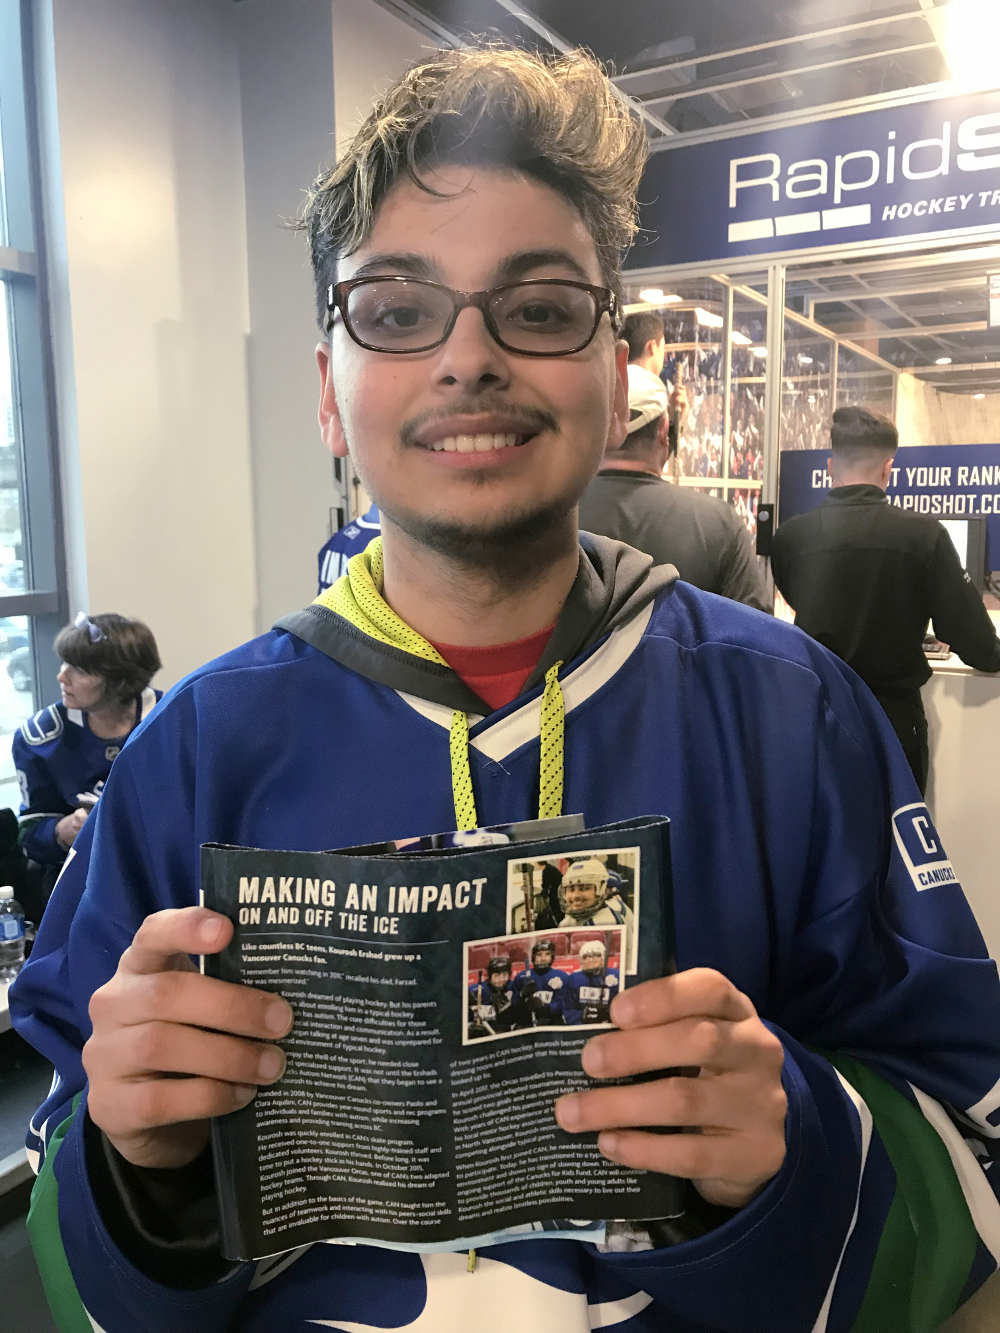 A teen male poses for a photo in an arena concourse holding a game-day magazine.